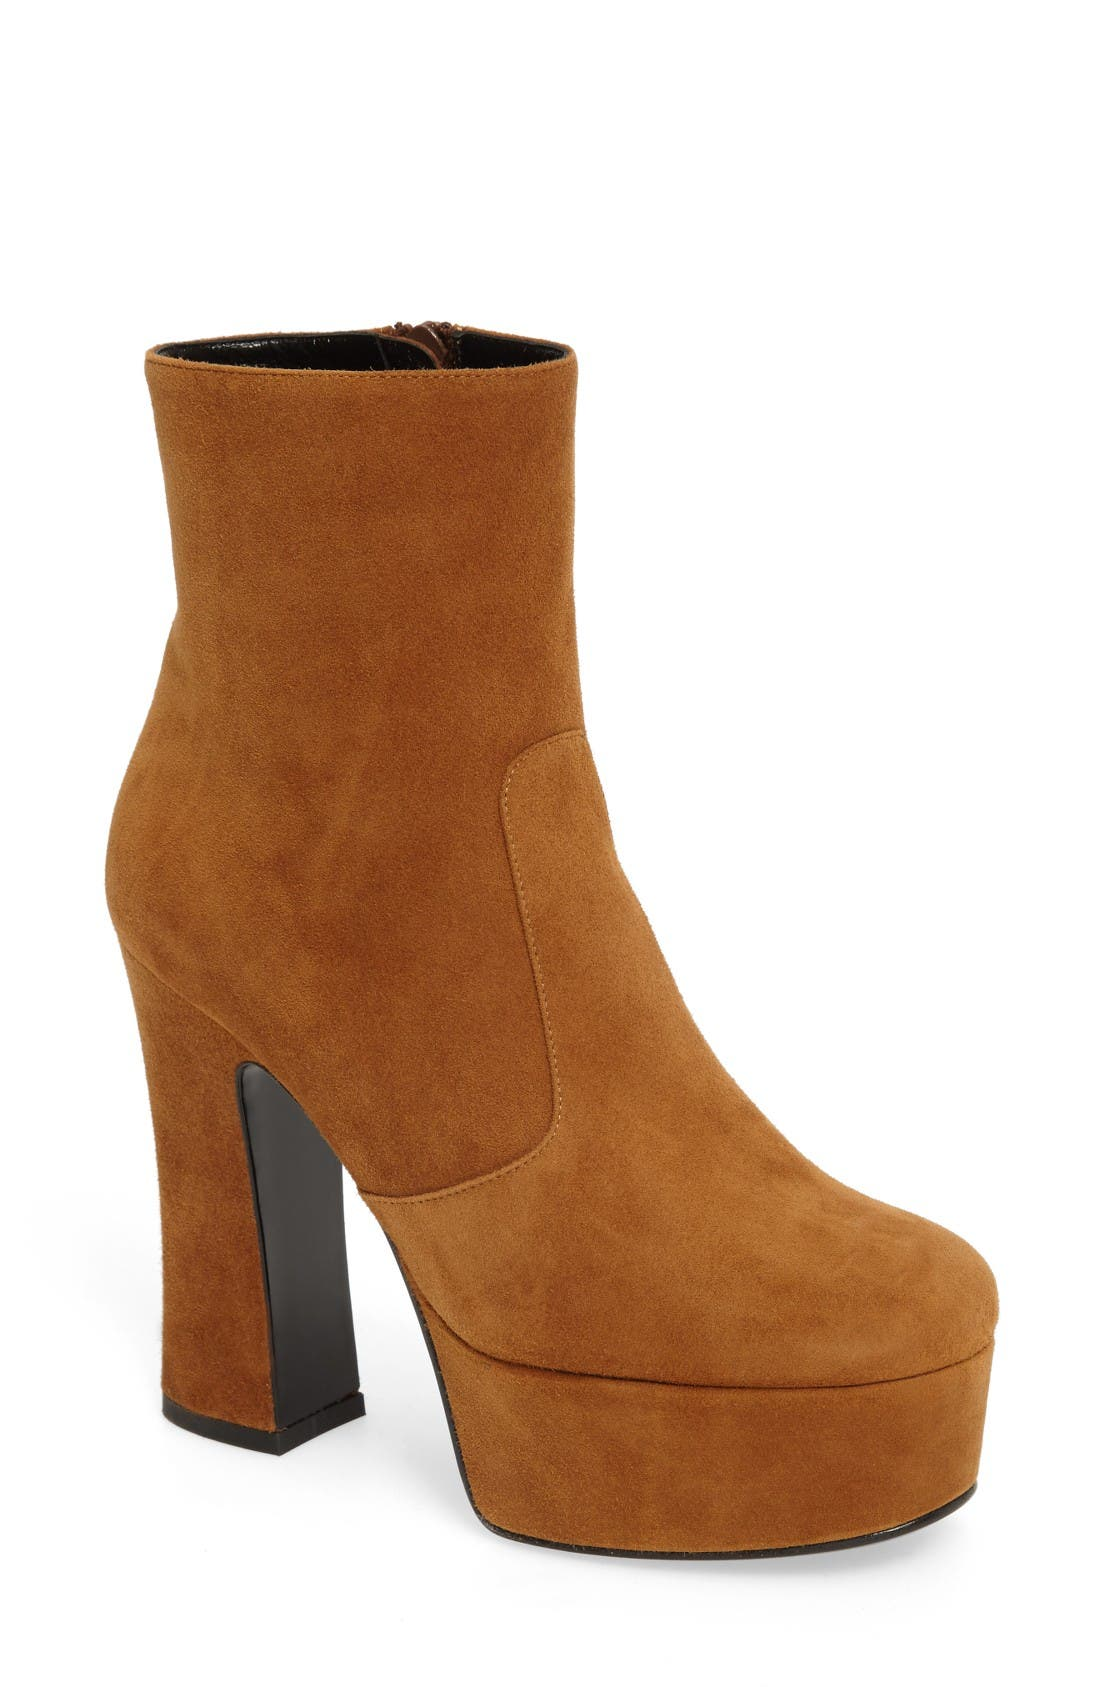 Main Image - Saint Laurent Candy Platform Bootie (Women)